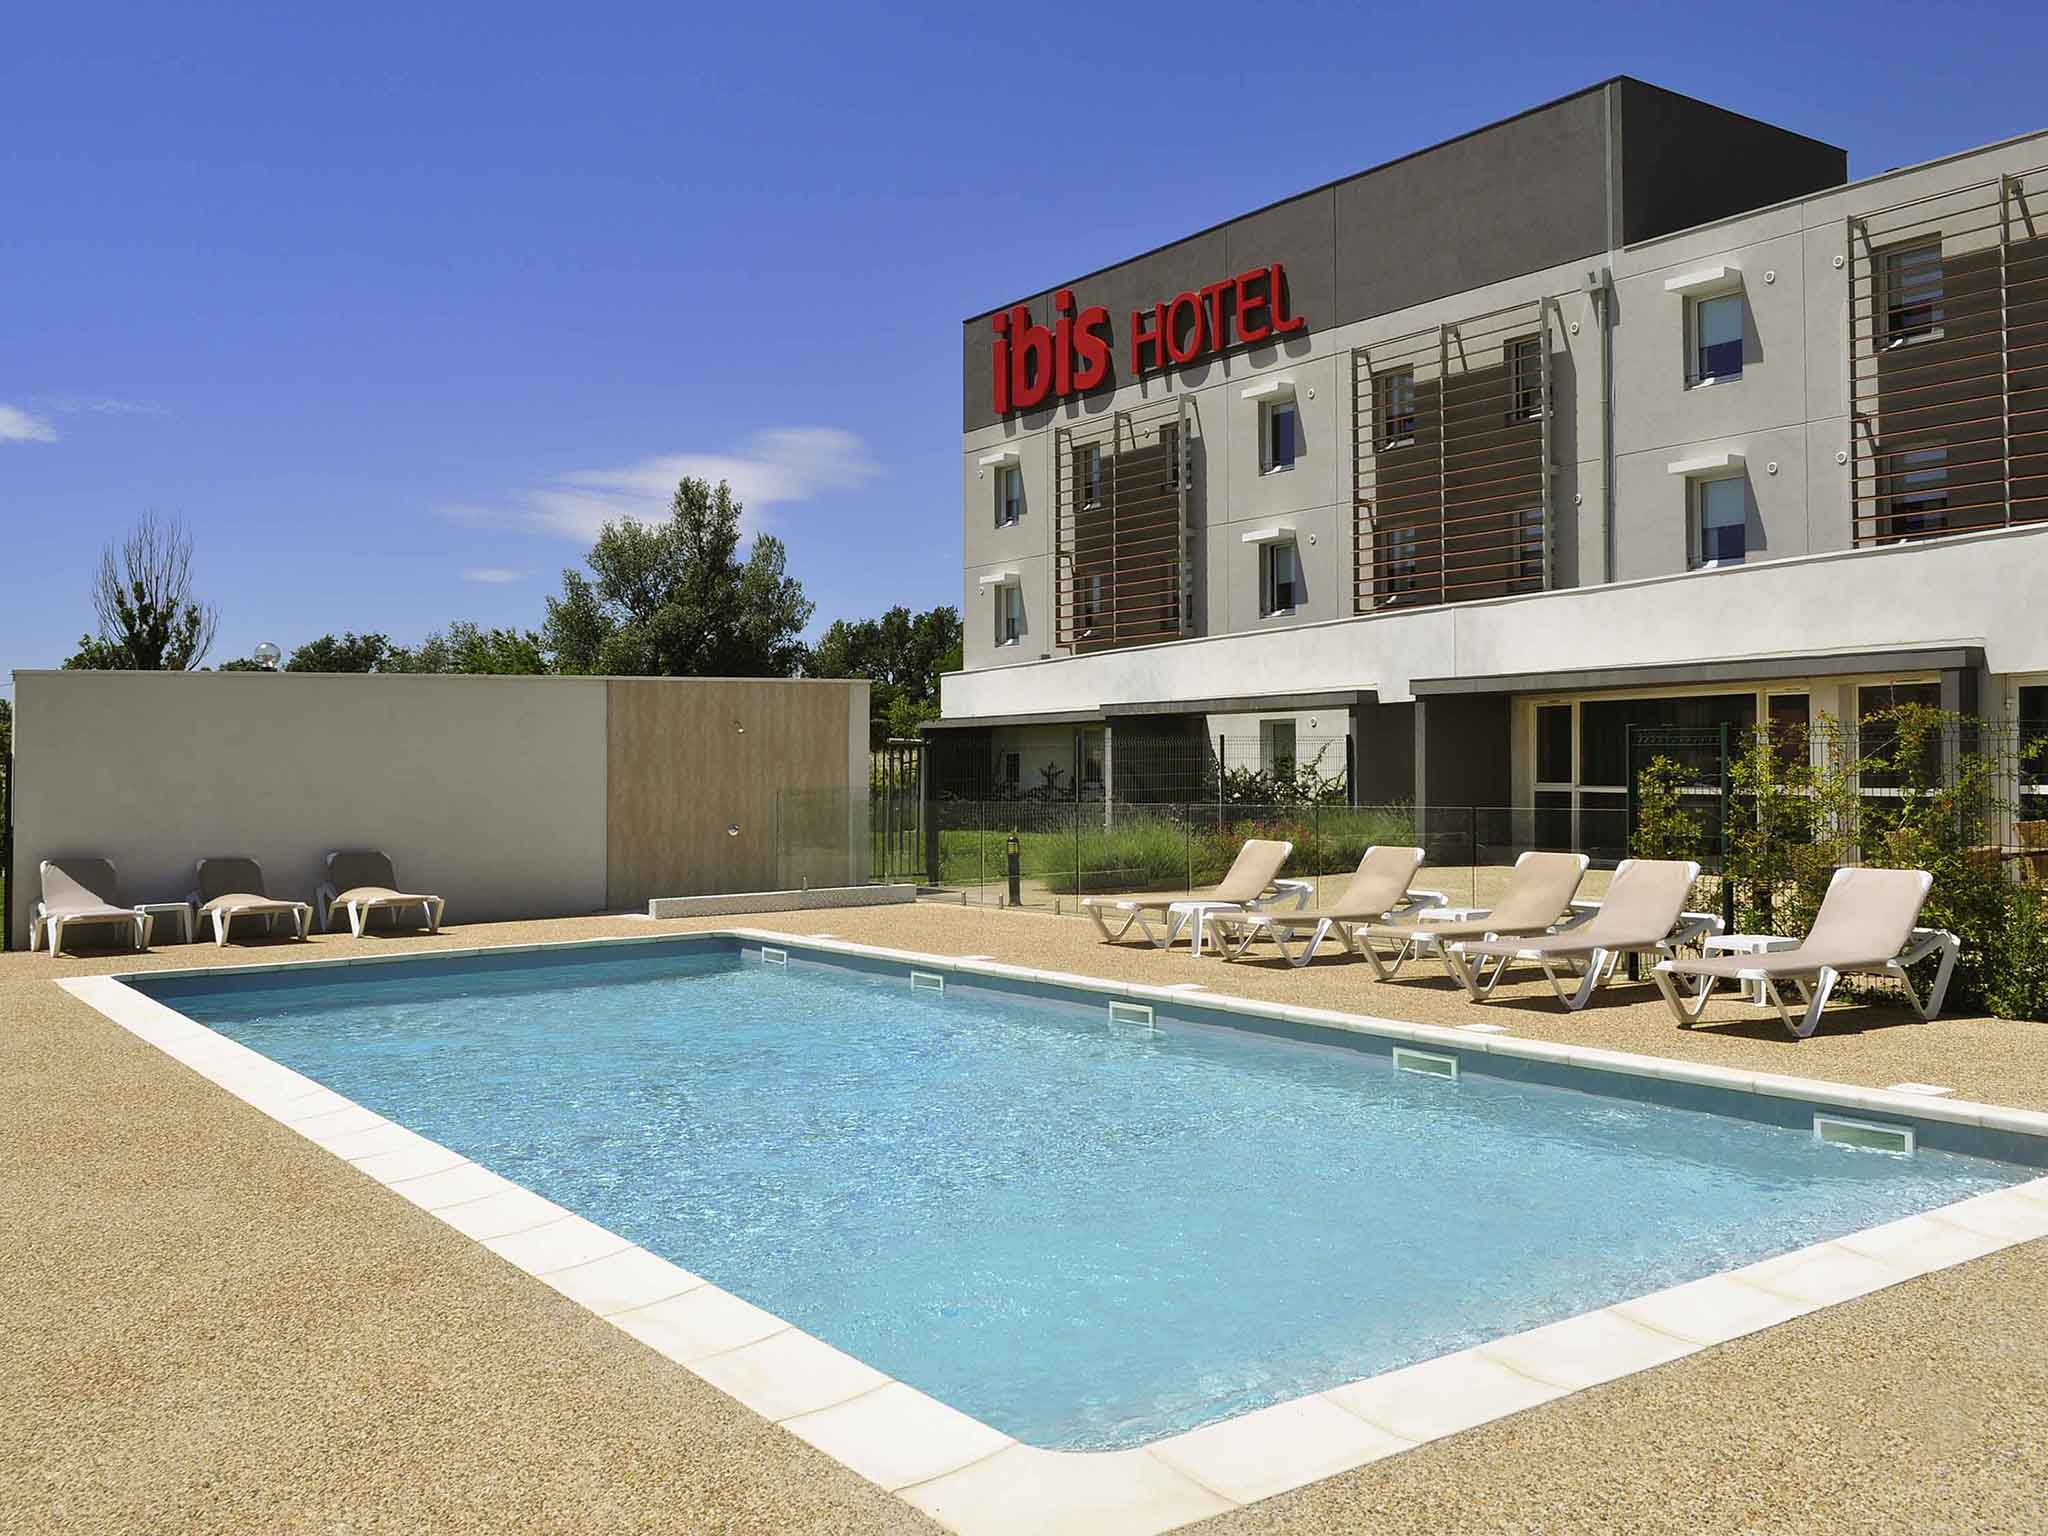 Hotel A Istres